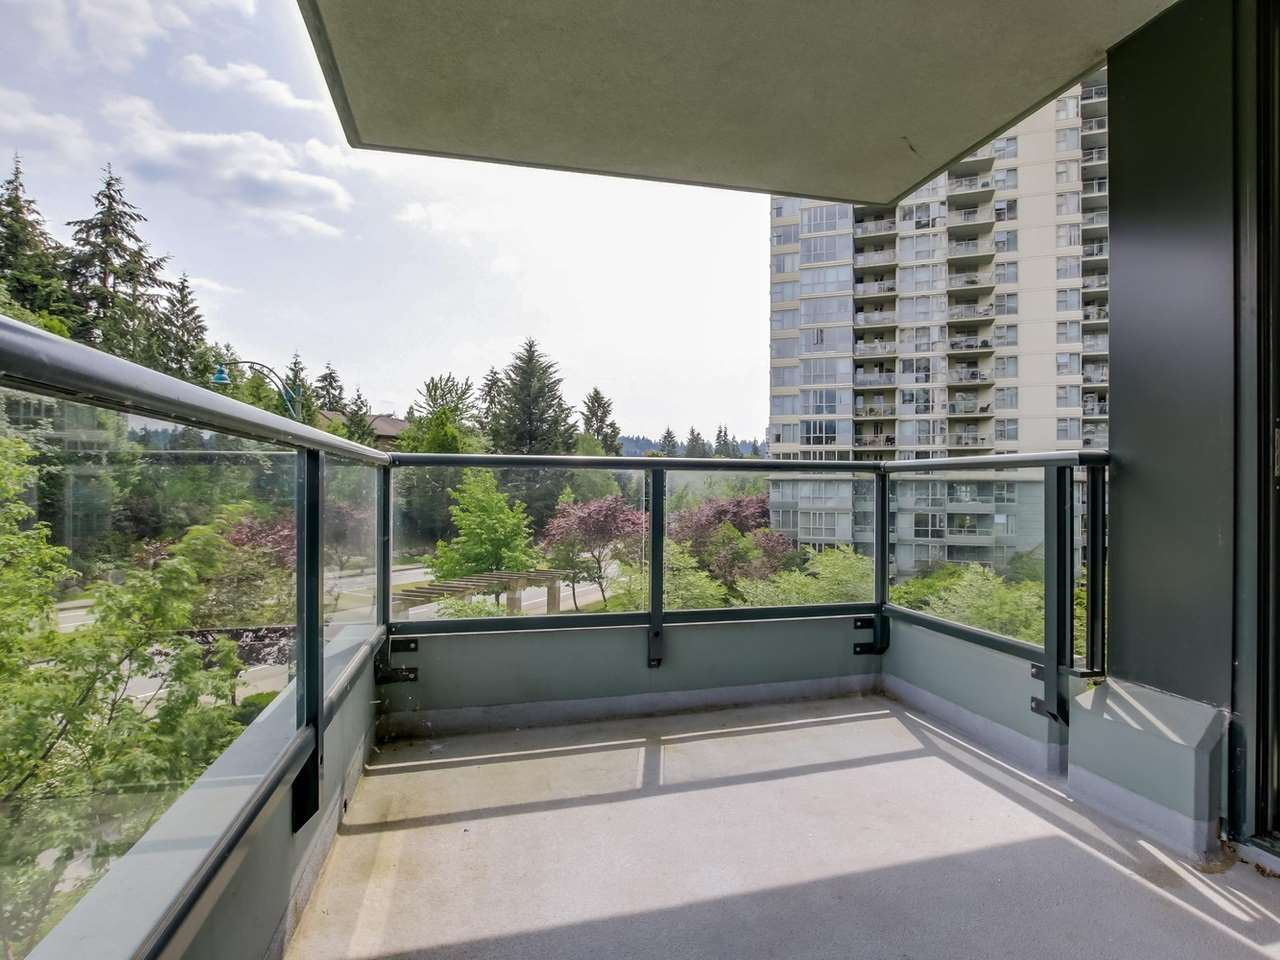 Photo 9: 203 288 UNGLESS WAY in Port Moody: Port Moody Centre Condo for sale : MLS(r) # R2071333